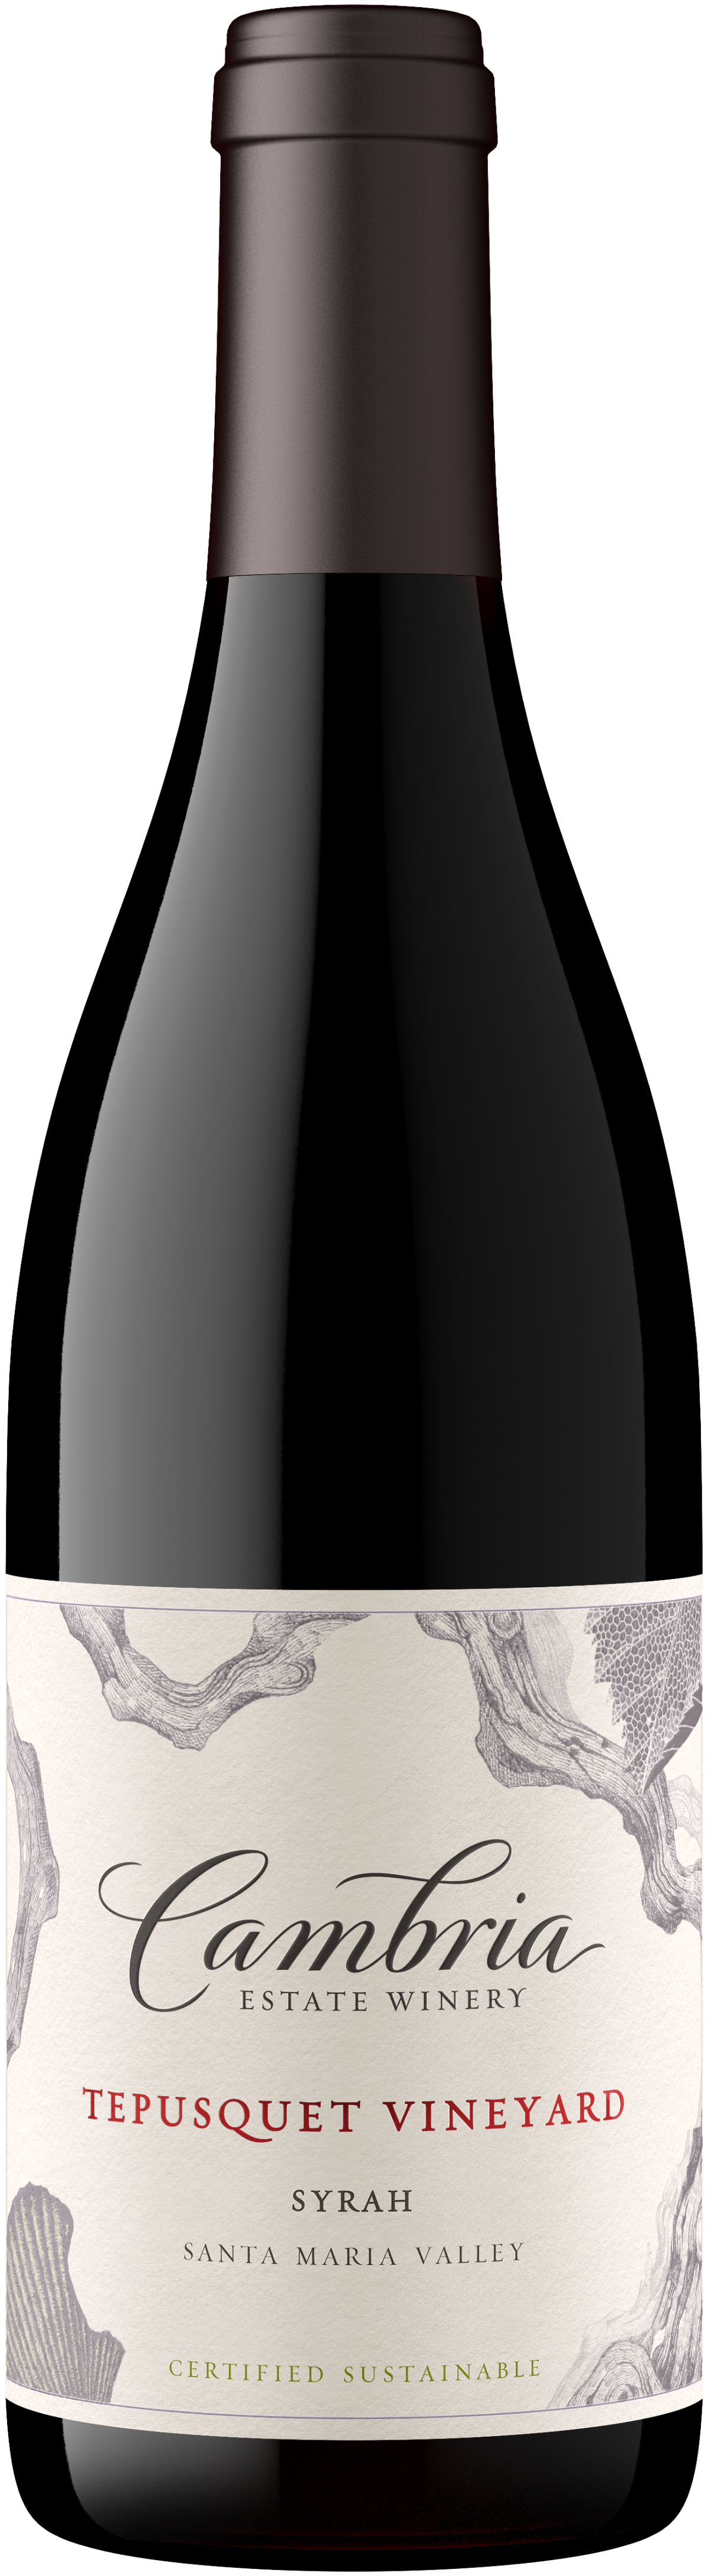 Syrah wine bottle